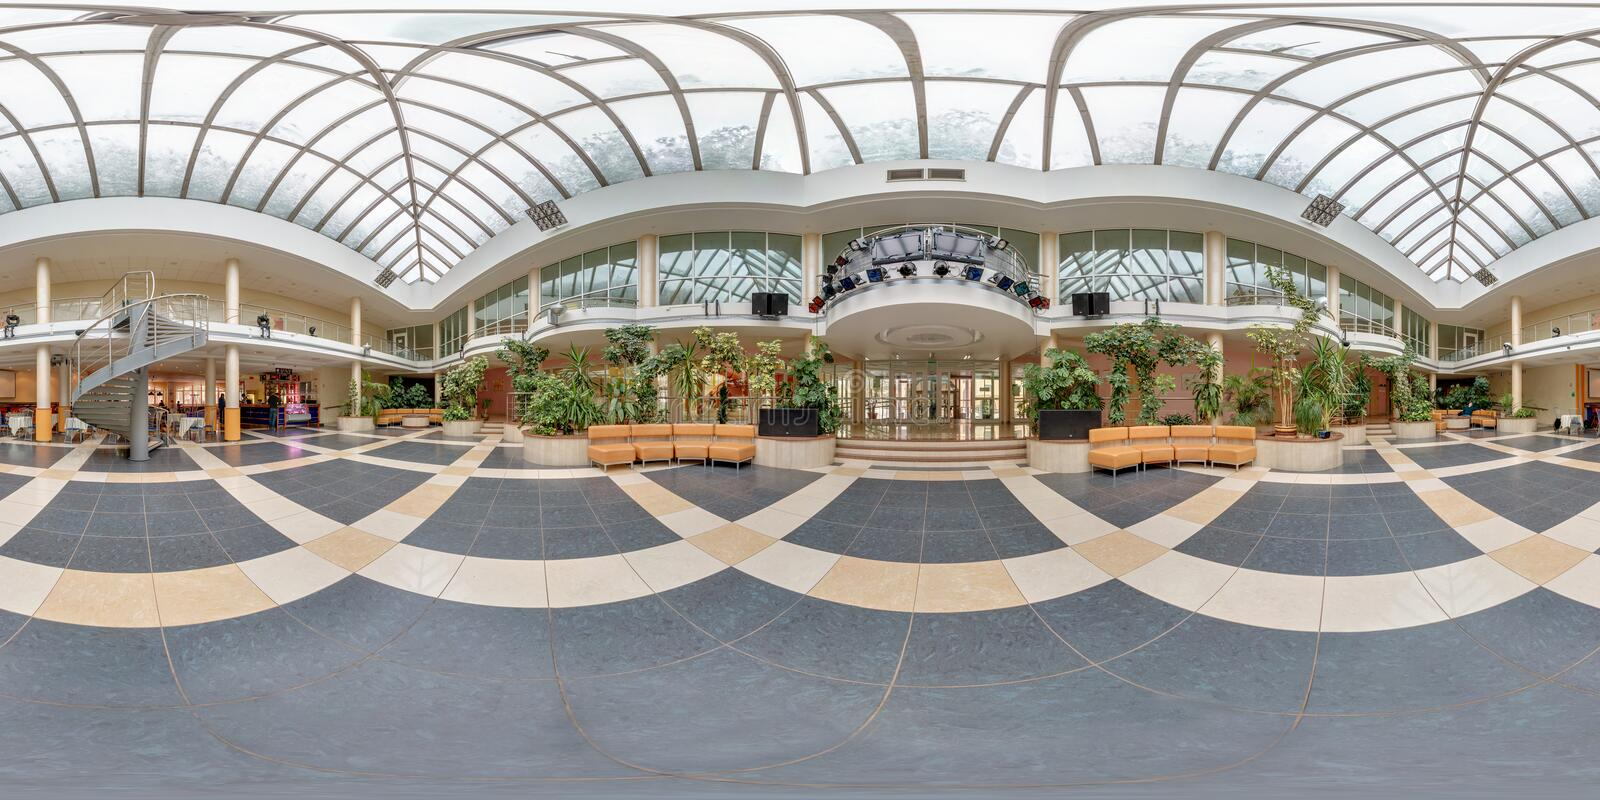 GRODNO, BELARUS - FEBRUARY 21, 2013: Full 360 degree panorama in equirectangular equidistant spherical projection in interier hall. In flower gallery royalty free stock photography